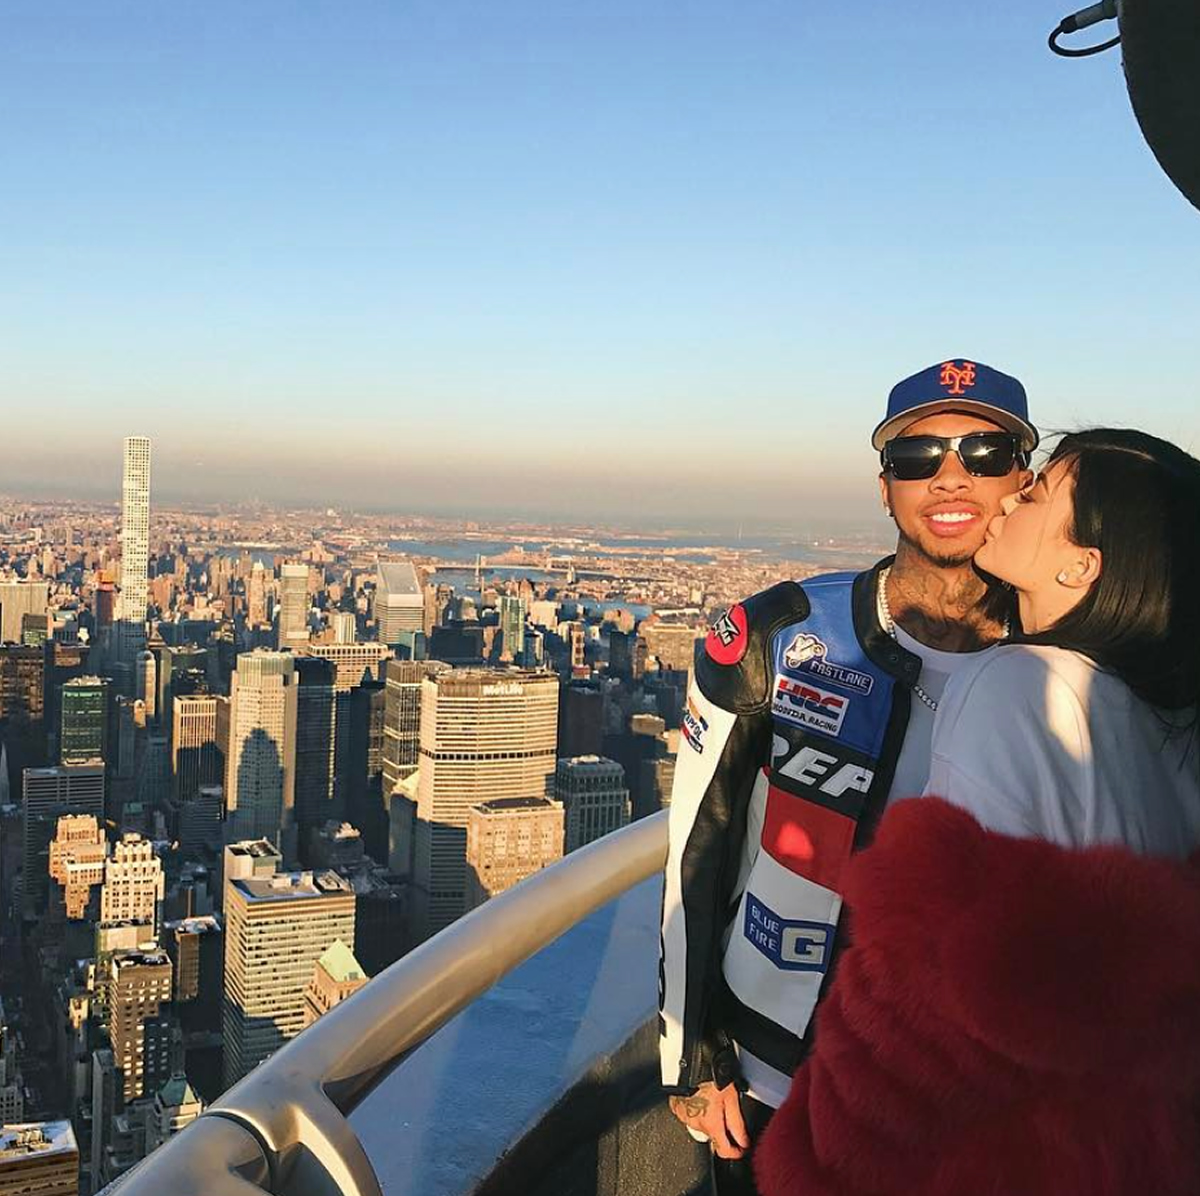 Empire State Building 20170214 Kylie Jenner Instagram Map ... on grand central map, mount rushmore map, rockefeller center map, new york map, times square map, new wtc map, nyc shooting map, ground zero map, building 7 map, lincoln park chicago neighborhood map, twin towers memorial map, ny state road map, central park map, museums in nyc map, las vegas map, hotel pennsylvania map, jersey city medical center map, nyc beaches map, freedom tower map, green lakes state park trail map,